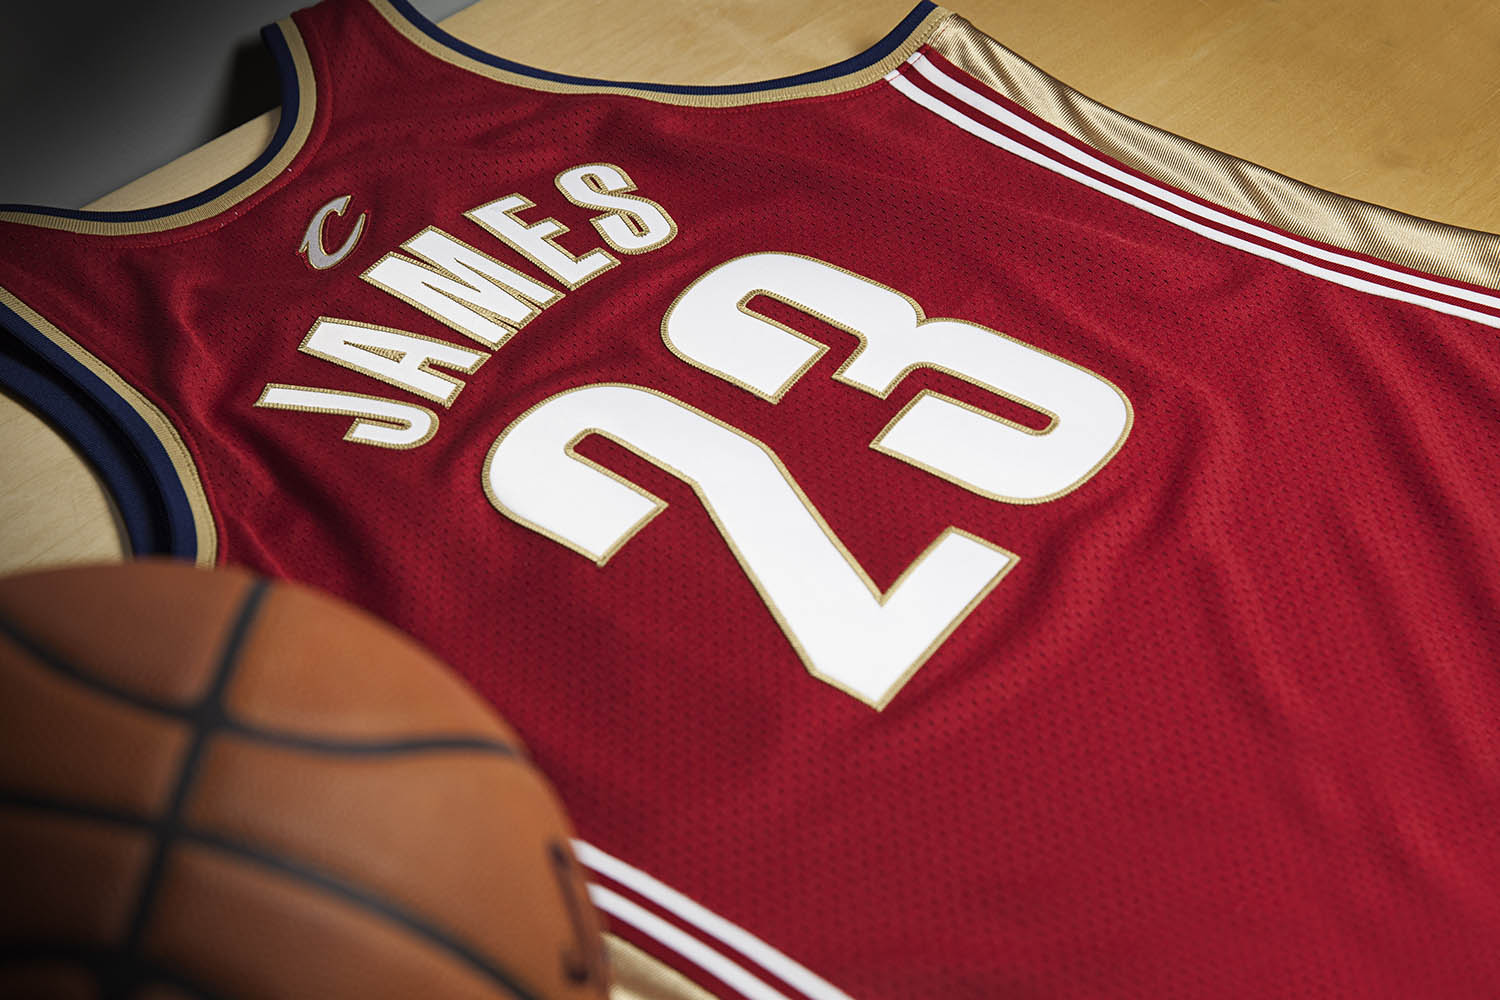 Mitchell & Ness LeBron James Rookie Jersey Back